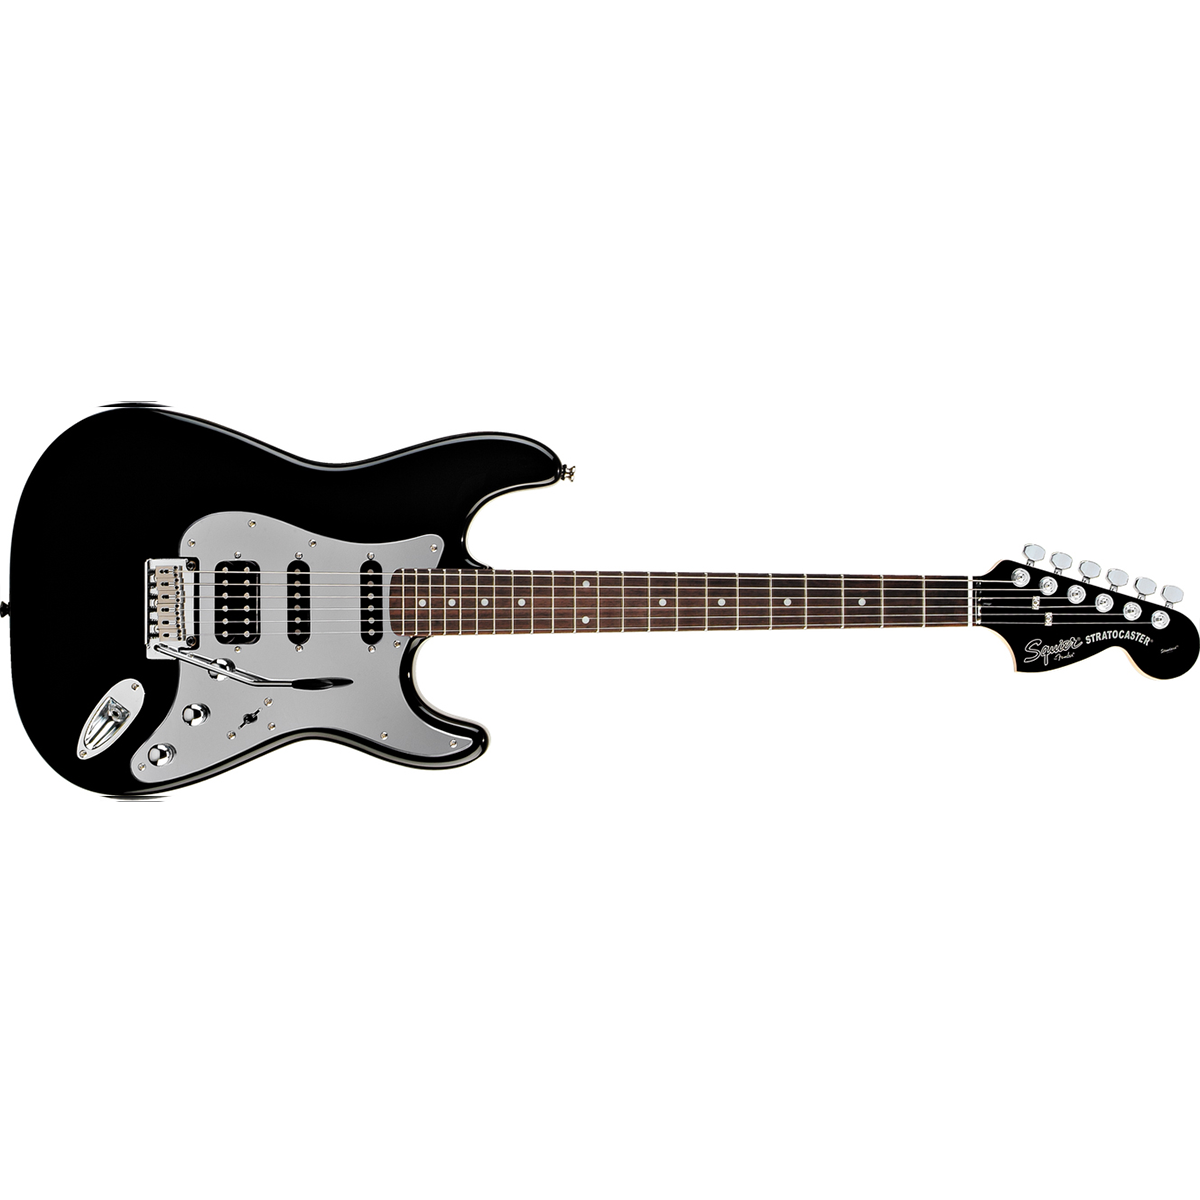 SQUIER BLACK & CHROME Fat Strat